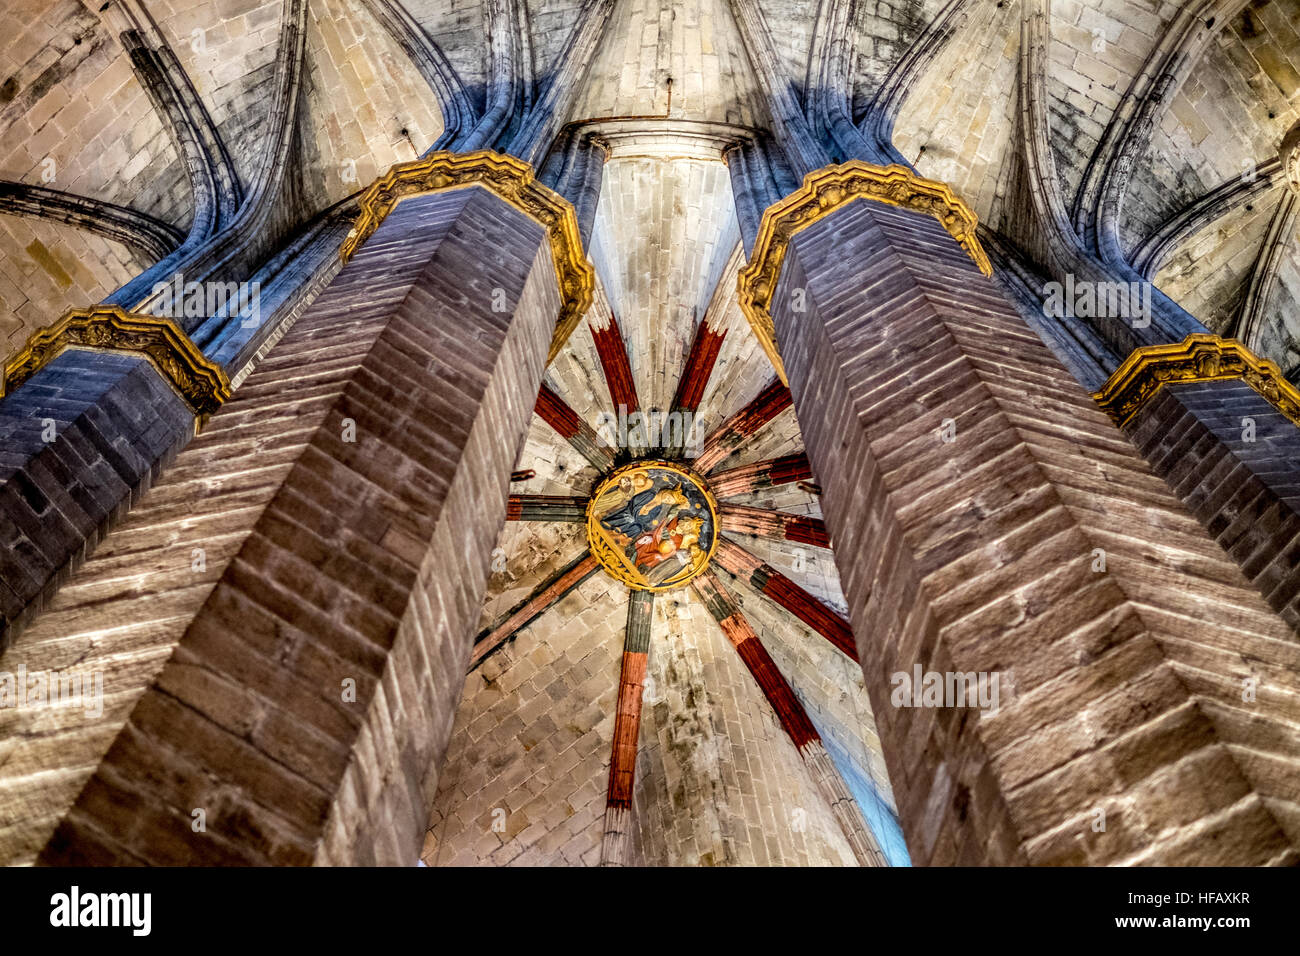 Cathedral Barcelona interior stained glass arch arched ceiling stone massive huge christ christian catholic protestant - Stock Image